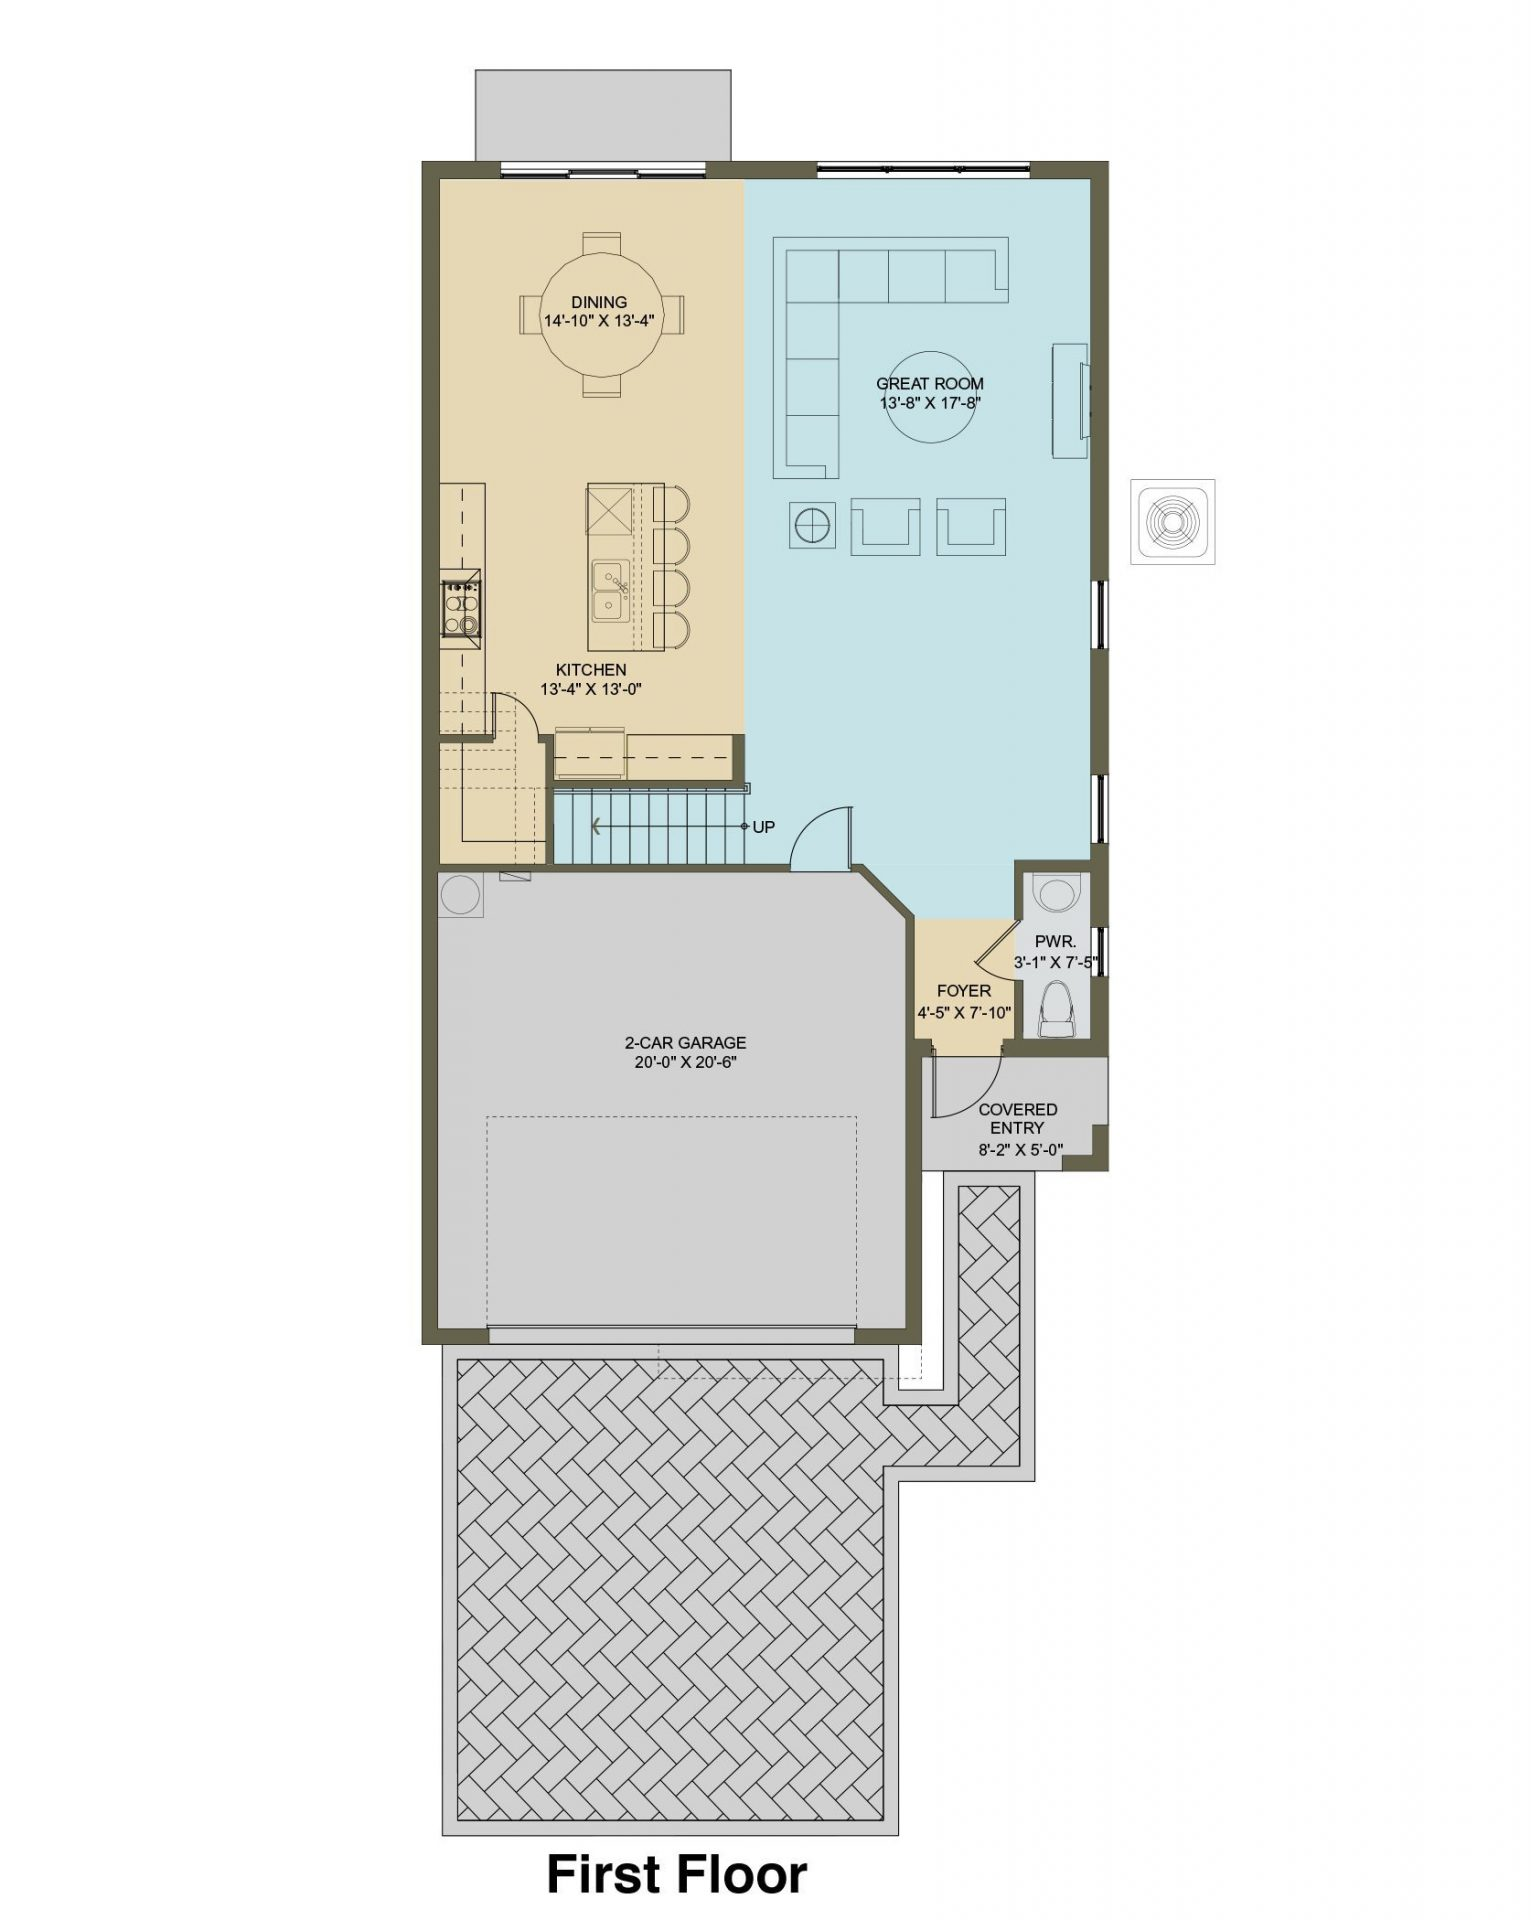 Floorplan of THE CYPRESS - SOLD OUT